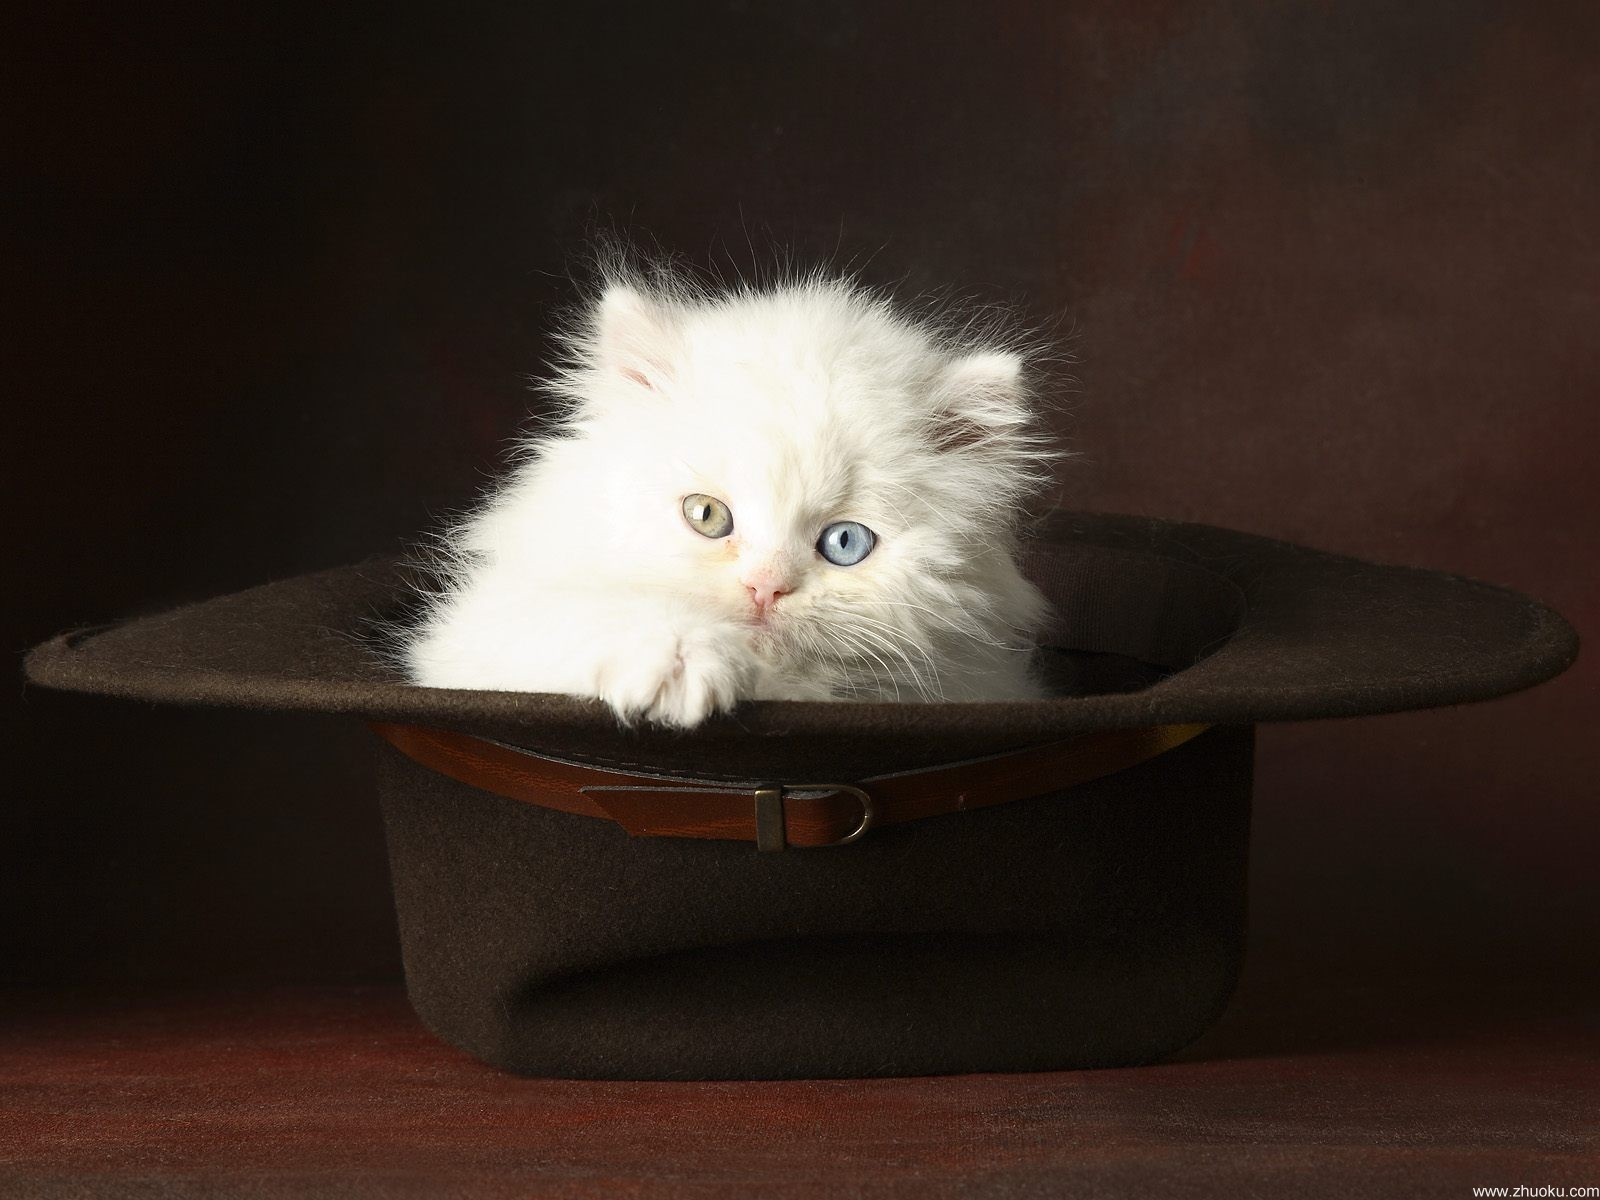 http://ru.wallfon.com/walls/animals/cat-in-the-hat-9391.jpg